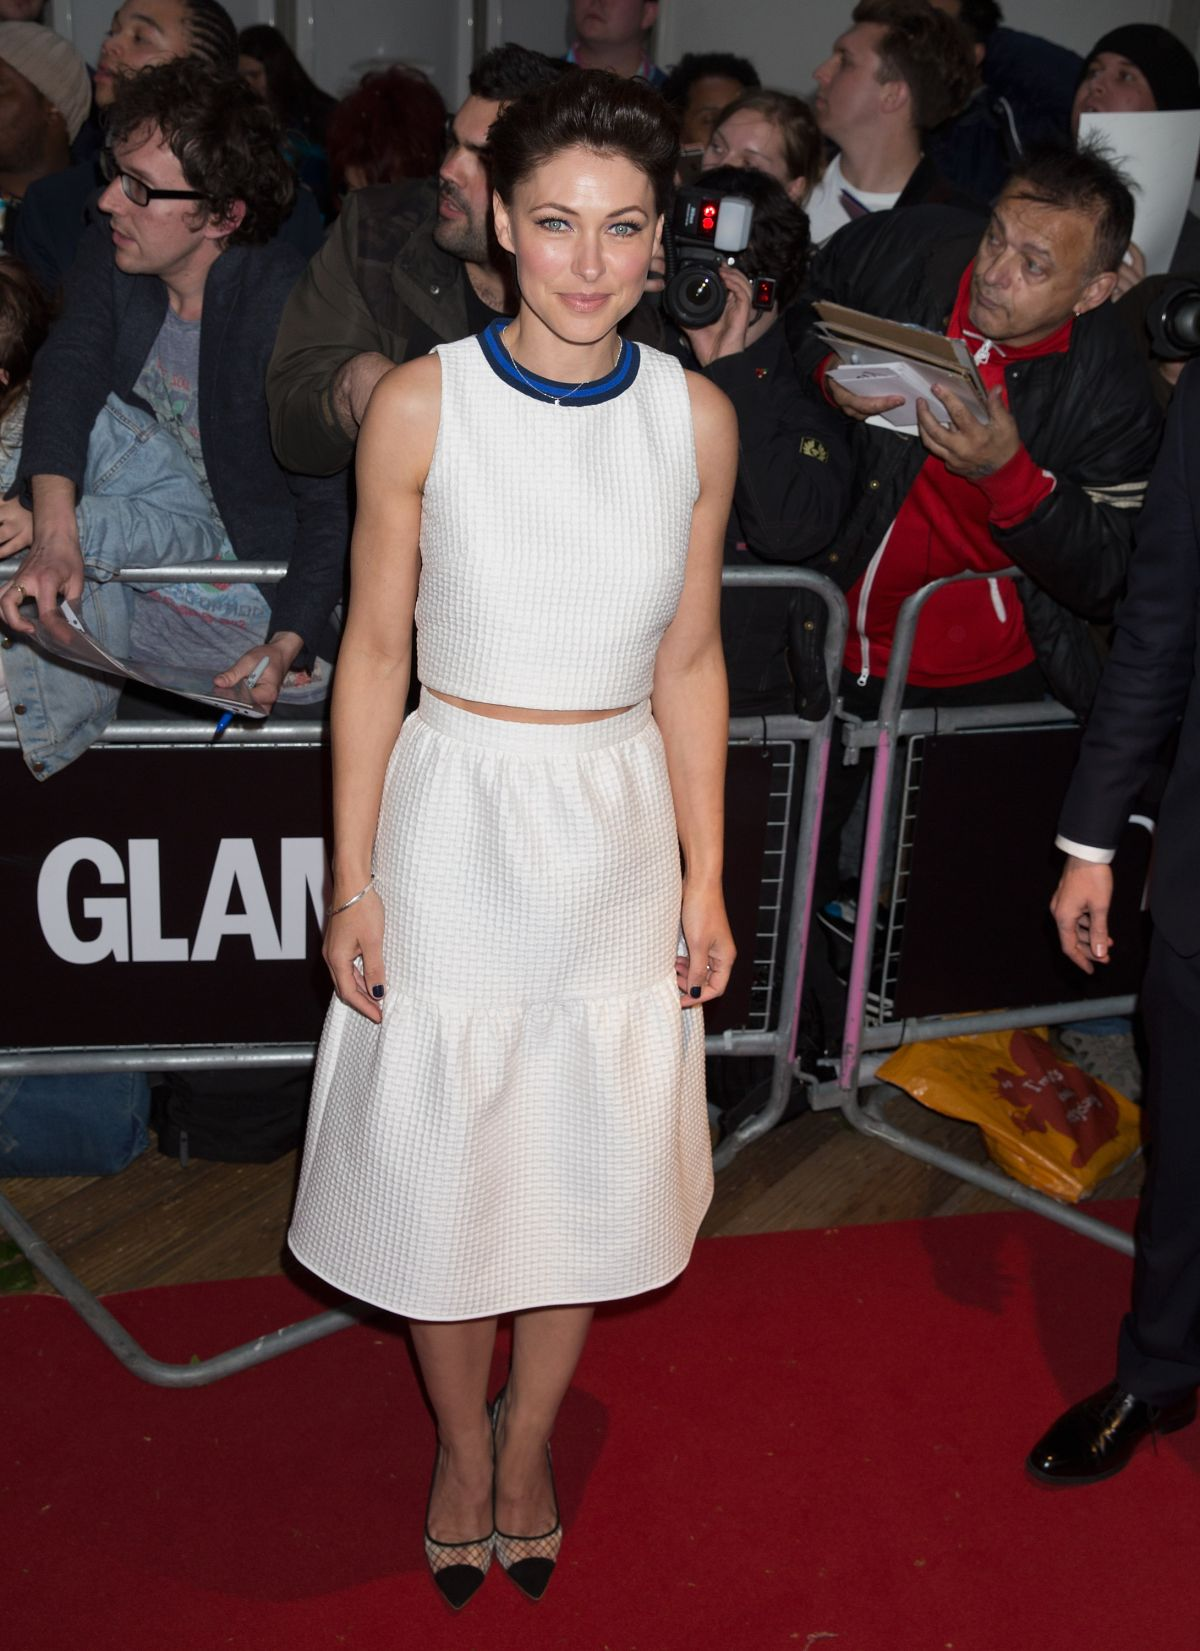 EMMA WILLIS at Glamour Women of the Year Awards in London 06/02/2015